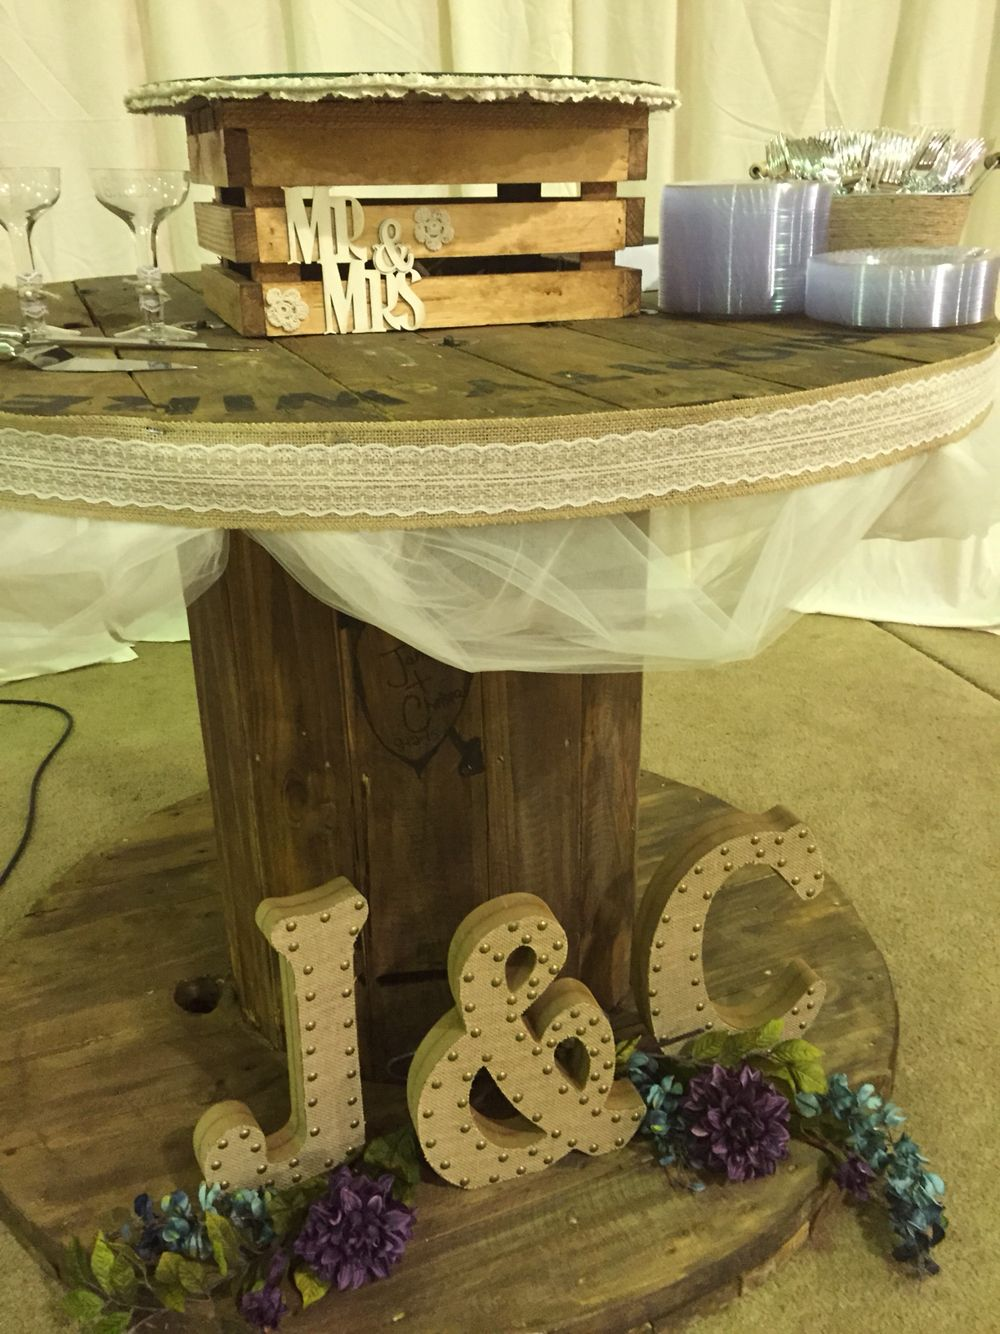 Wire spool wedding cake table | Wedding | Pinterest | Wire spool ...